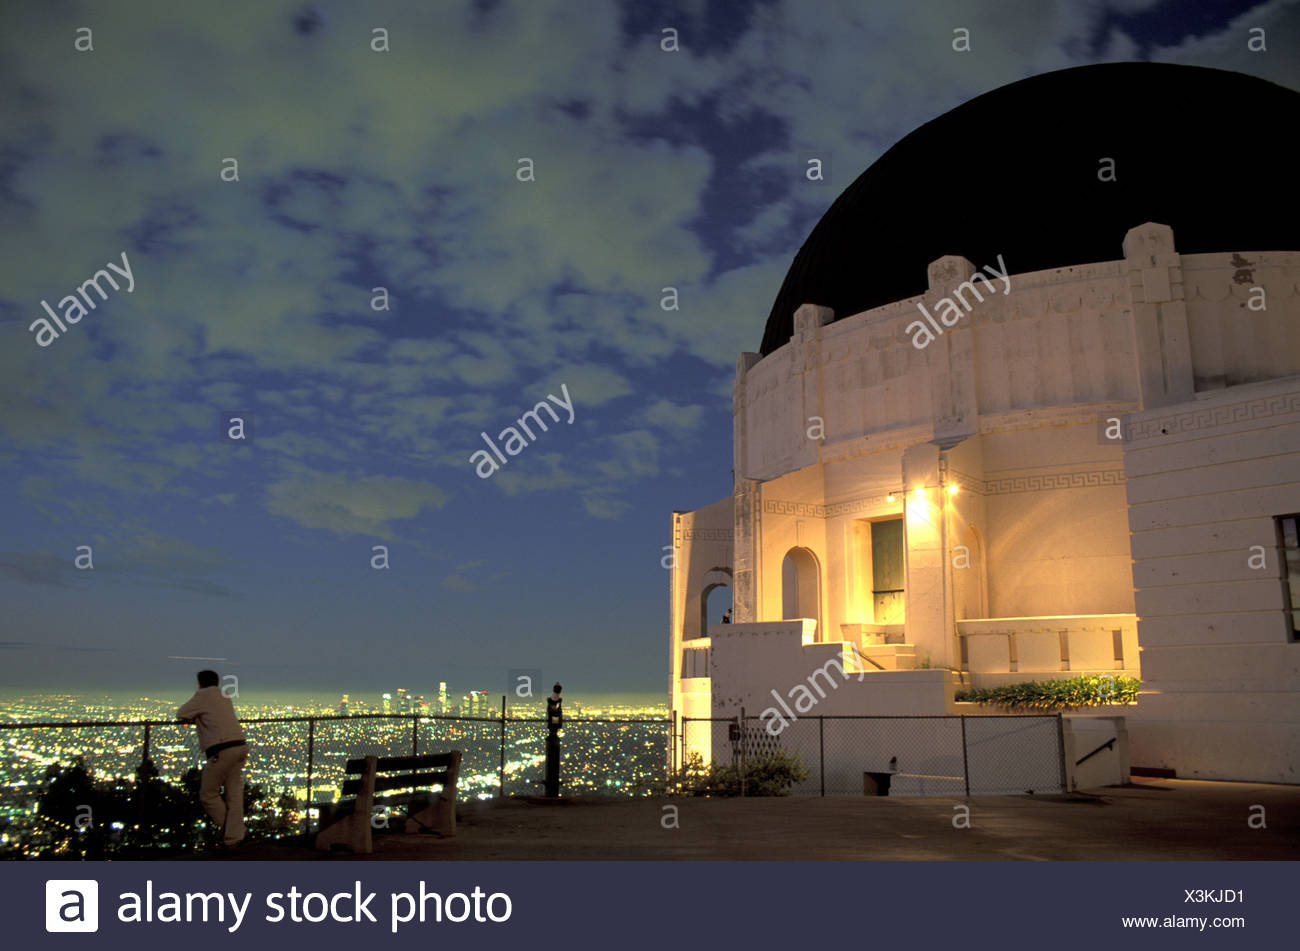 California Griffith Observatory Los Angeles USA America United States North America night - Stock Image